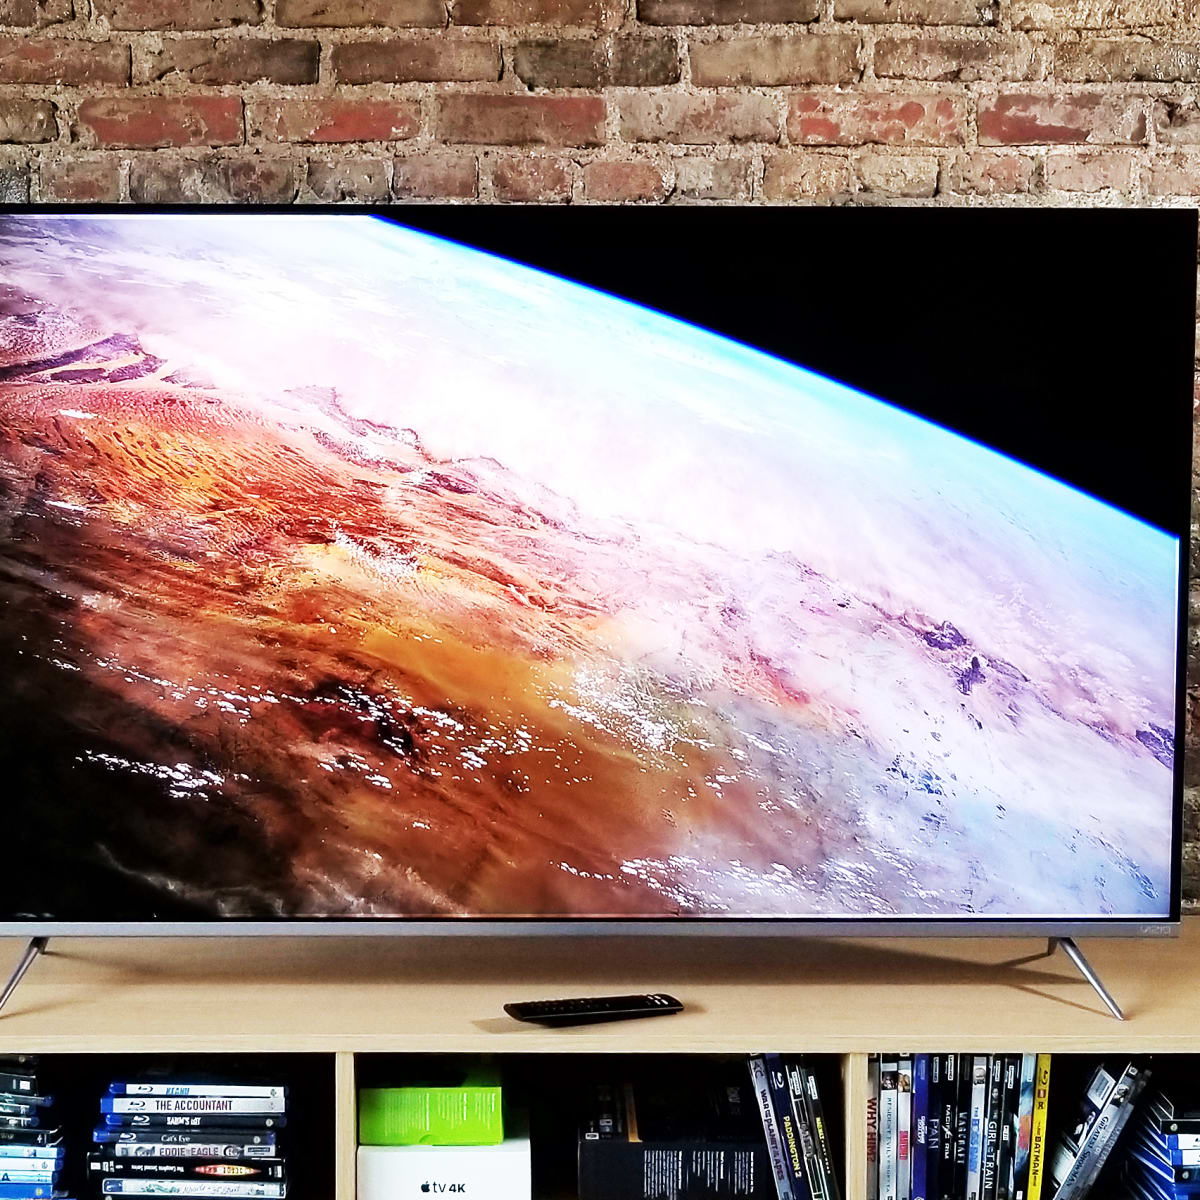 The Best Big Screen TVs Under $1,000 of 2019 - Reviewed Televisions